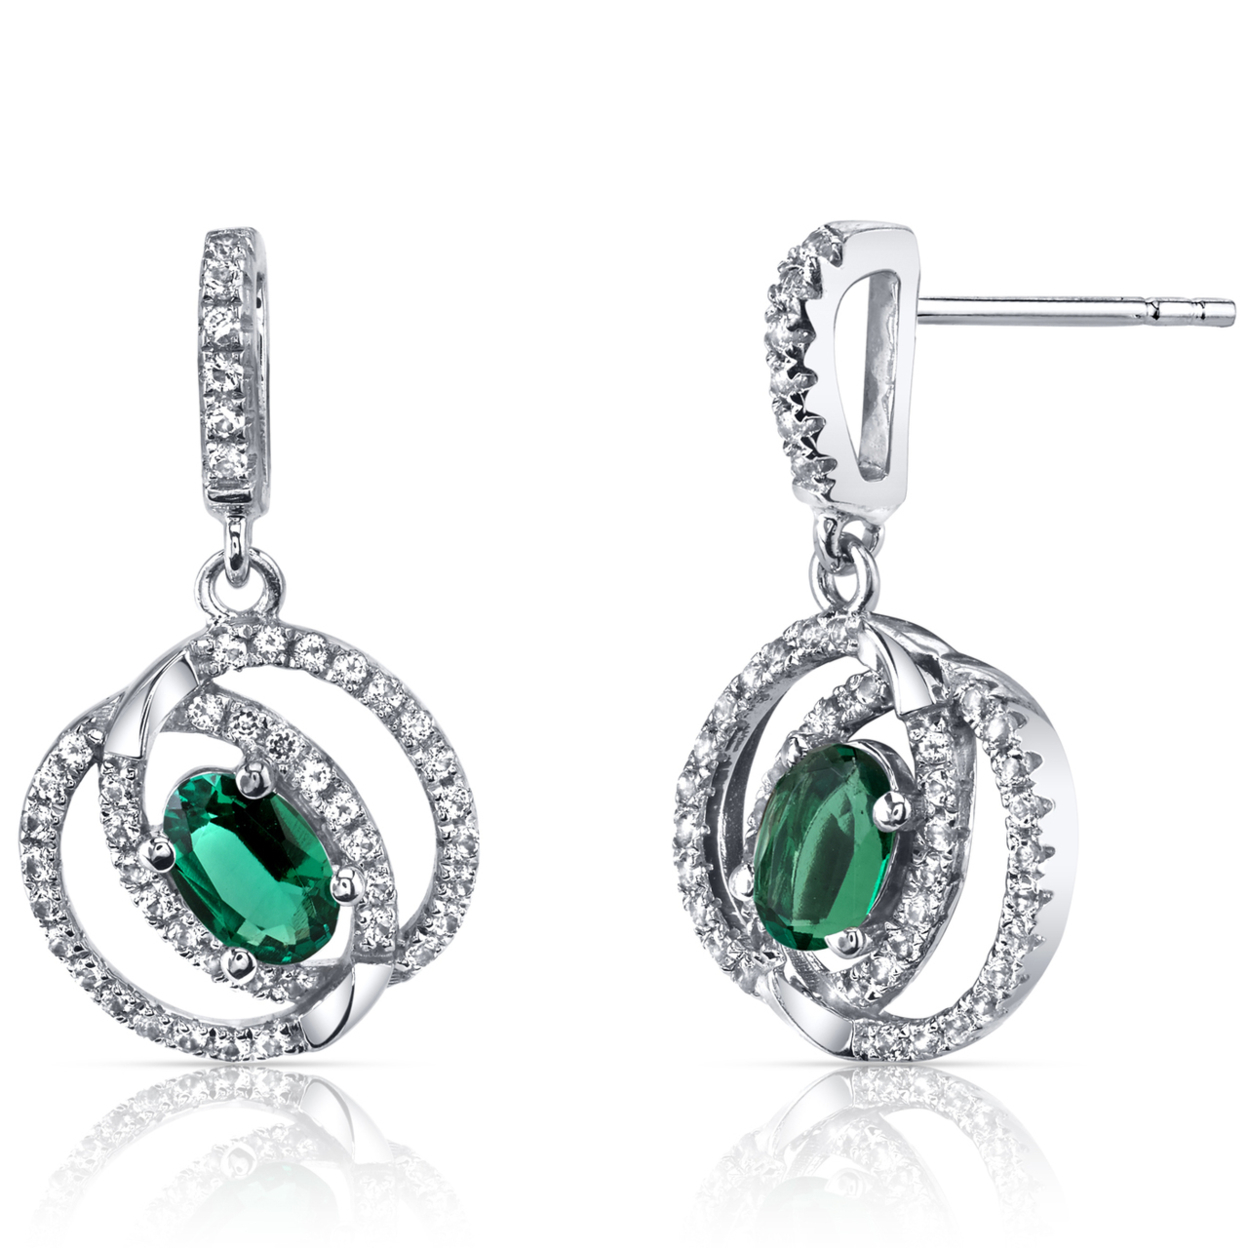 14k White Gold Created Emerald Earrings Dual Halo Design 0.75 Carats